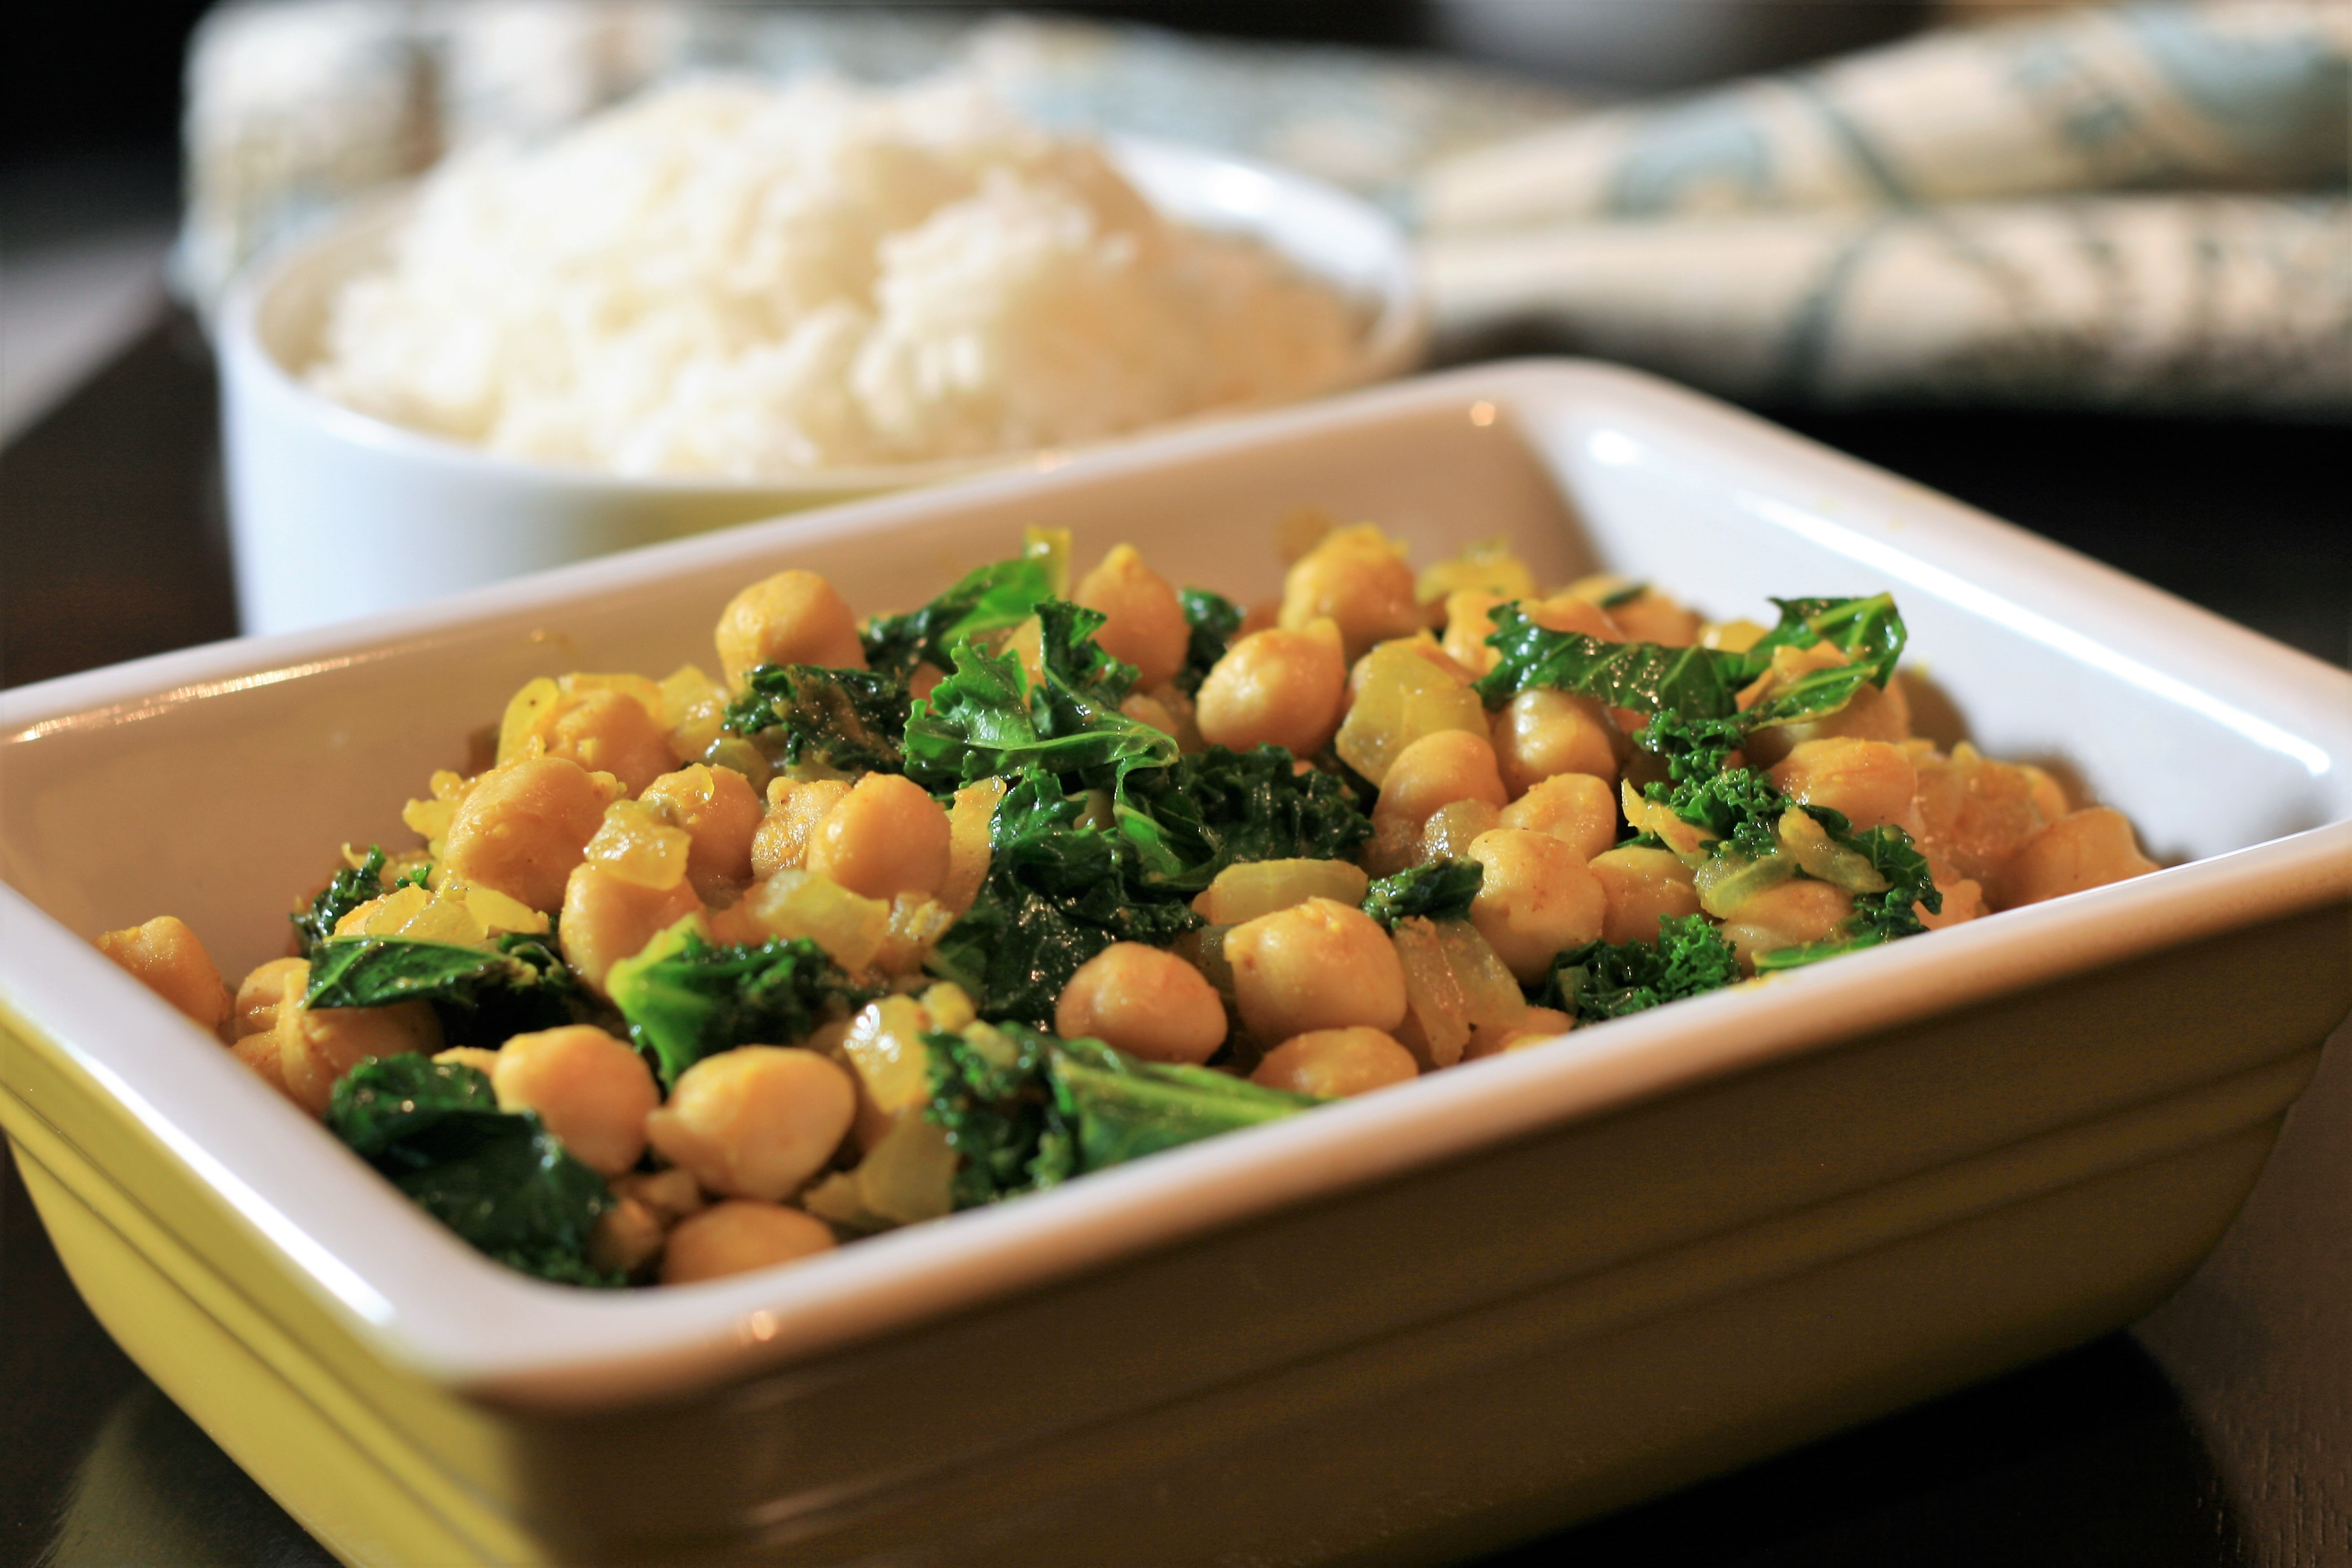 """Kale is sauteed with chickpeas and Indian spices. """"This is a delicious way to cook kale if you are running out of ideas, and it goes great with Indian dishes like dal,"""" says Lady Laff. """"Make sure not to overcook the greens!"""""""